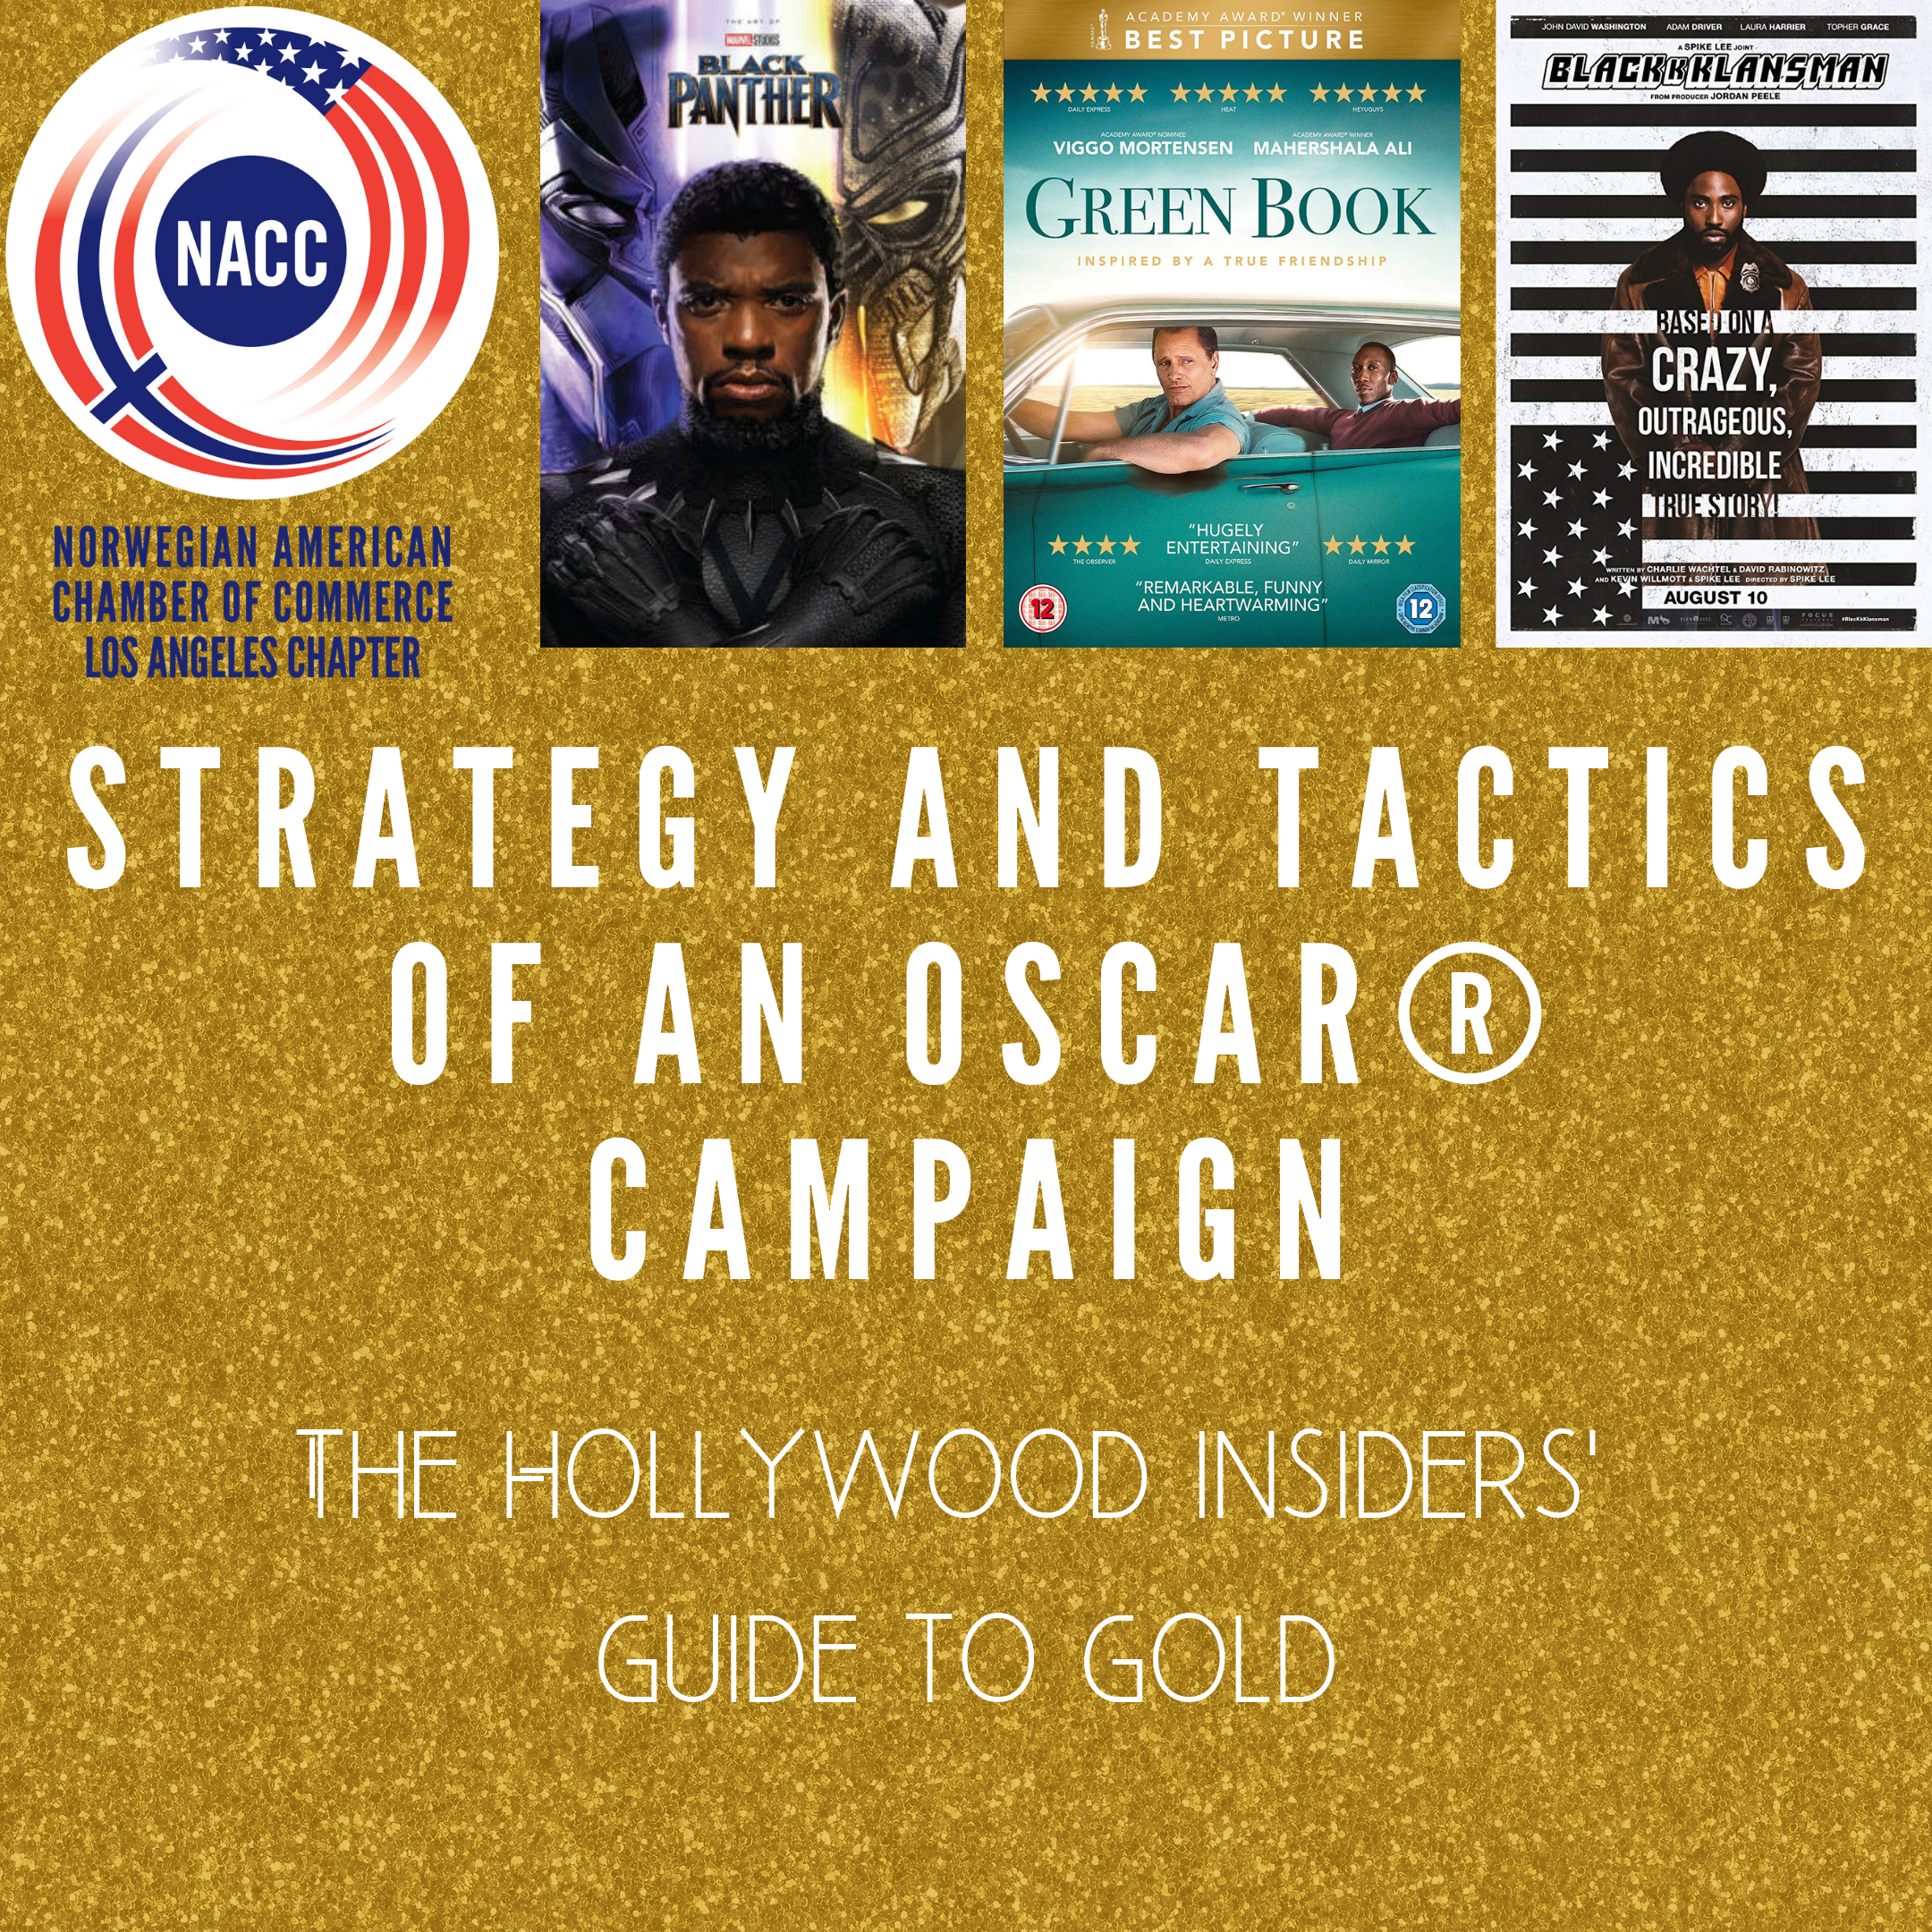 Strategy and tactics of an Oscar campaign with film posters-2.png